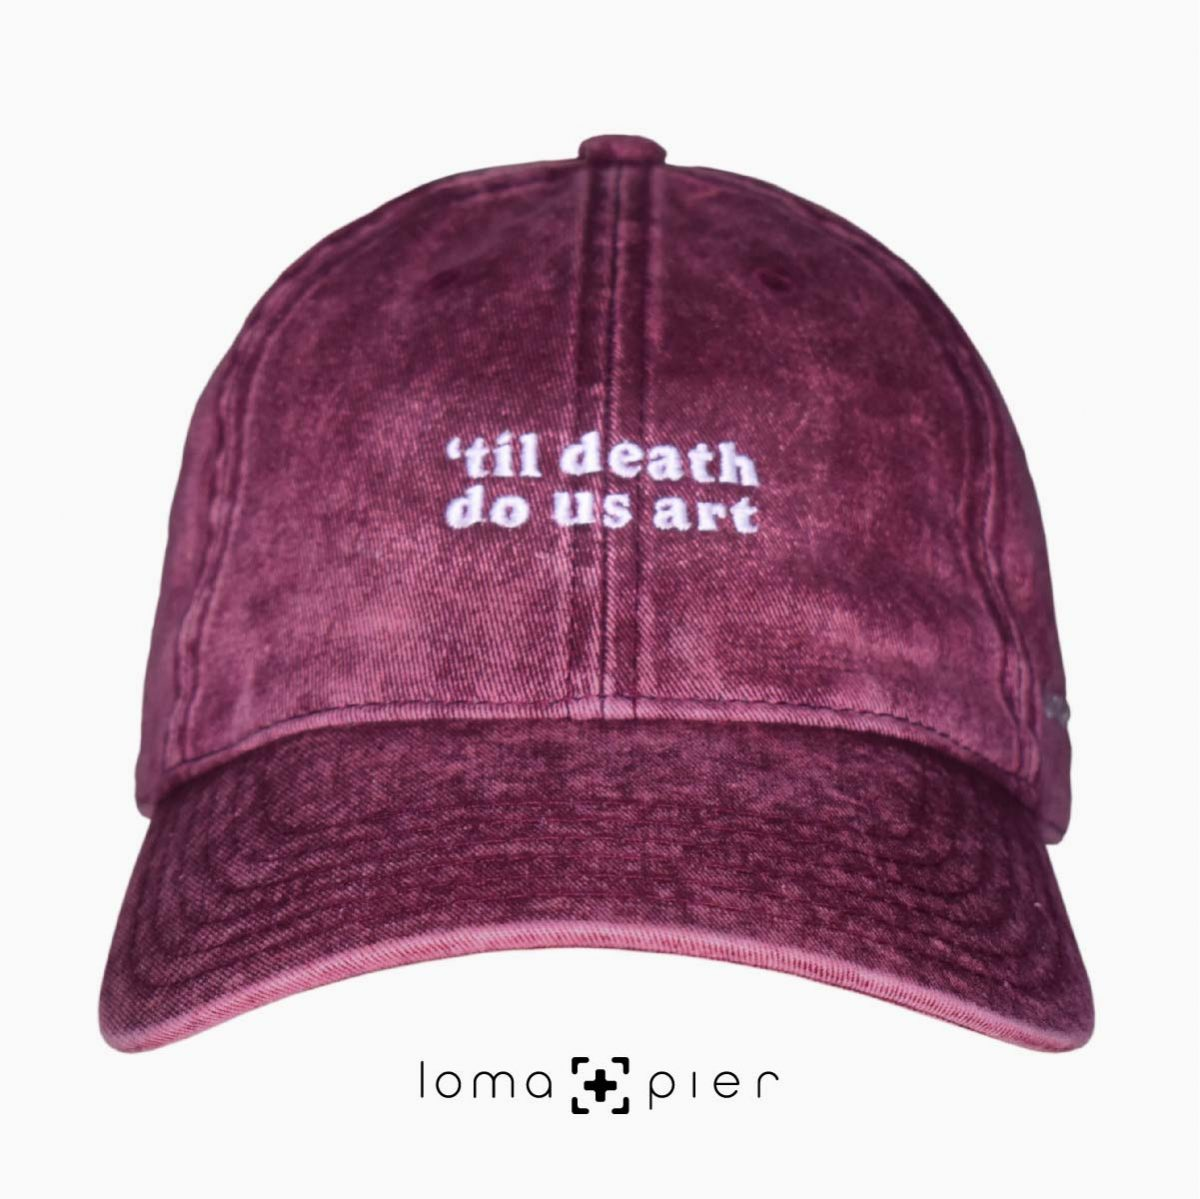 TIL DEATH DO US ART vintage dad hat at the loma+pier hat store